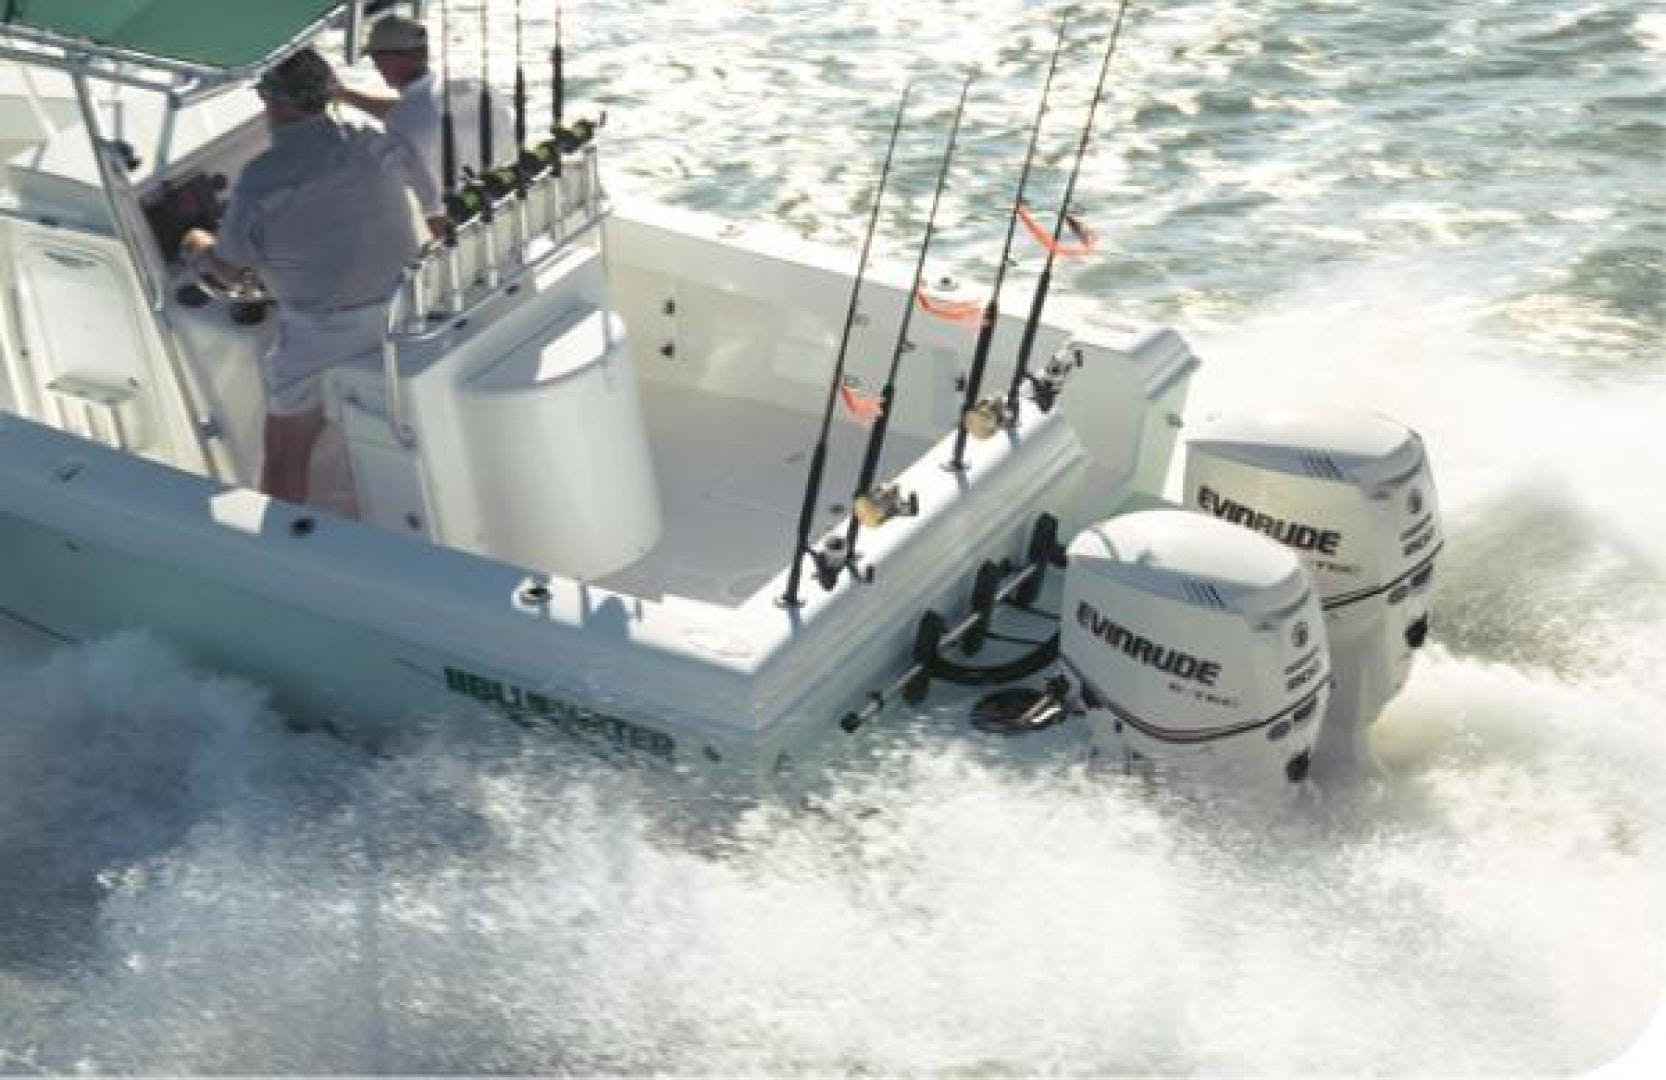 2020 Bluewater Sportfishing 22' 23t Bluewater Sportfishing 23t | Picture 6 of 7